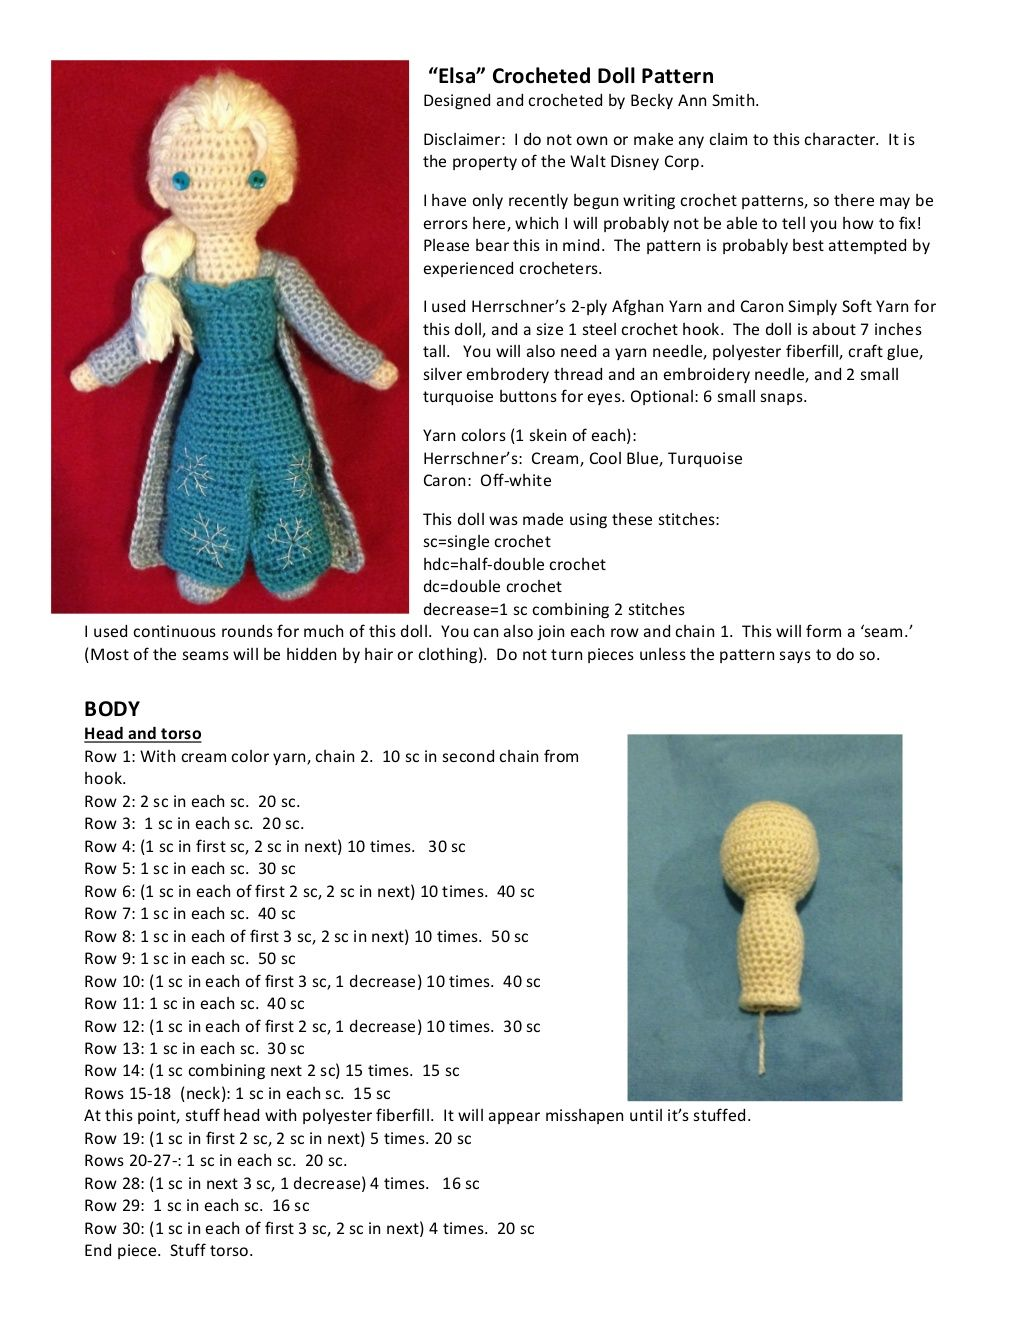 Free Crochet Pattern: Elsa or Daenerys Doll | Doll patterns and Doll ...